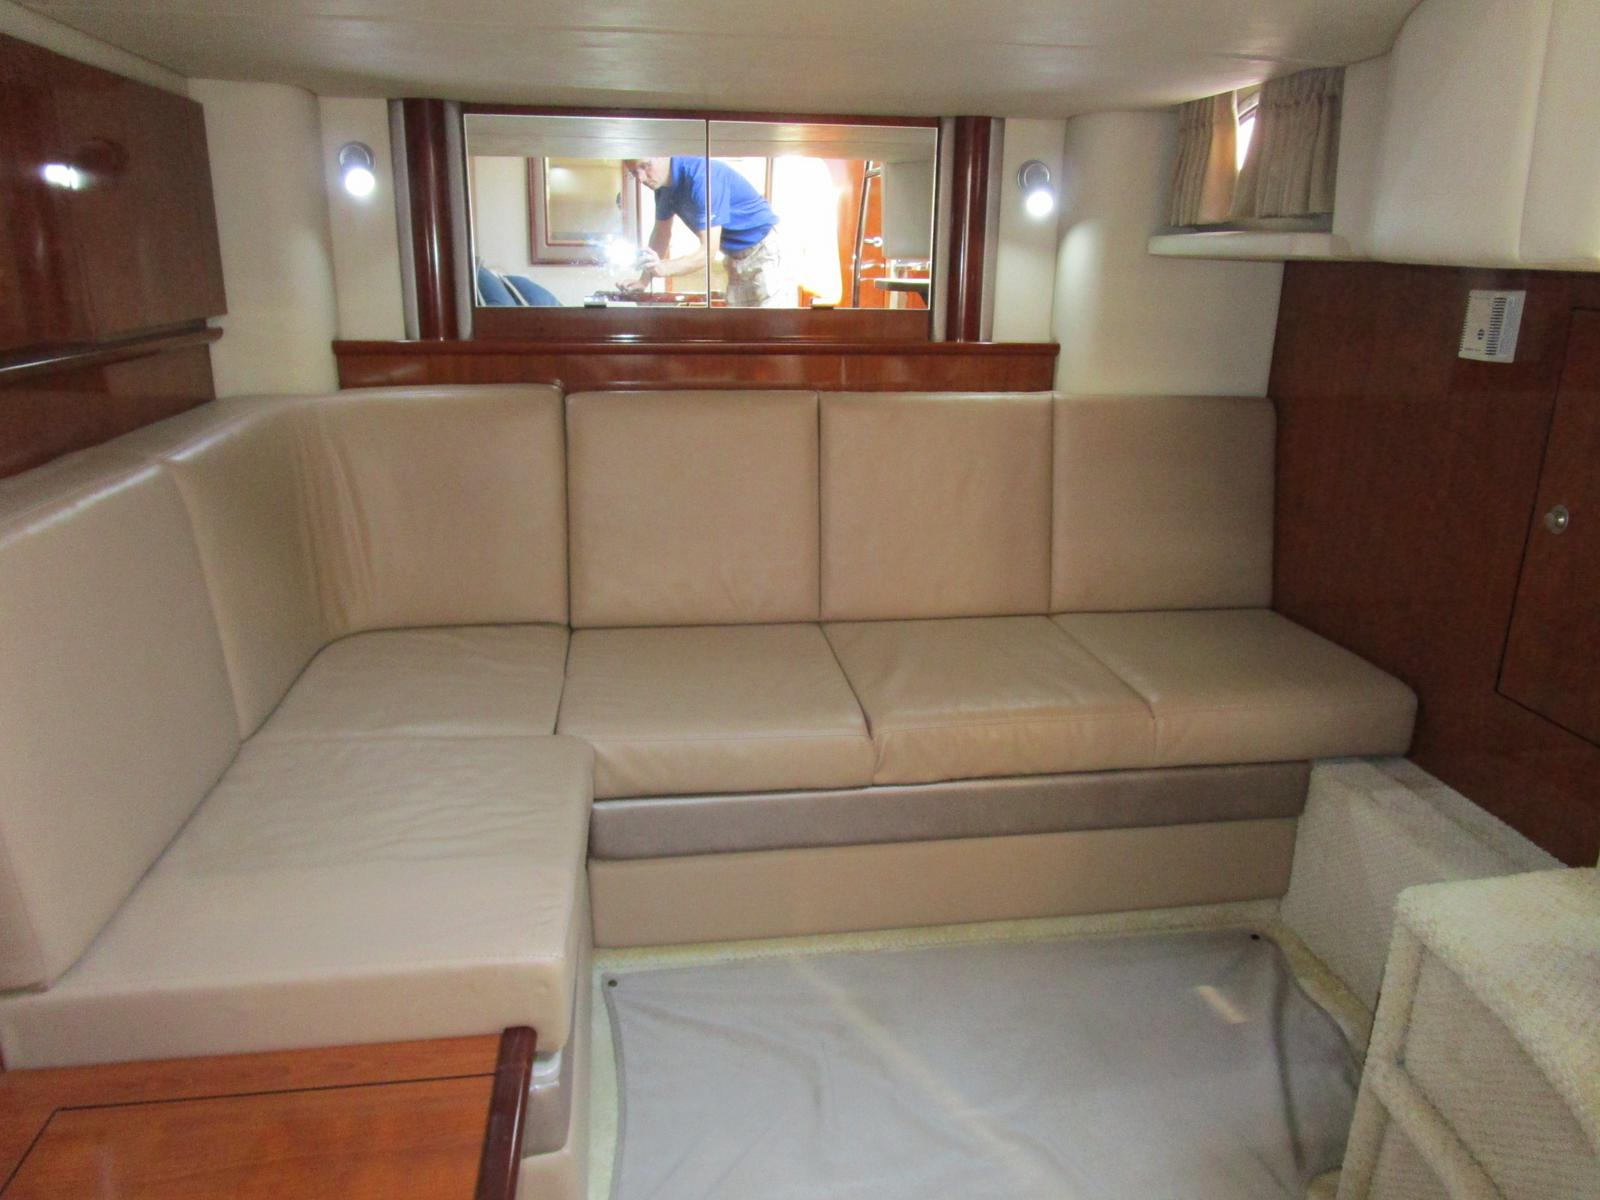 2004 Sea Ray boat for sale, model of the boat is 390 Sundancer & Image # 5 of 8